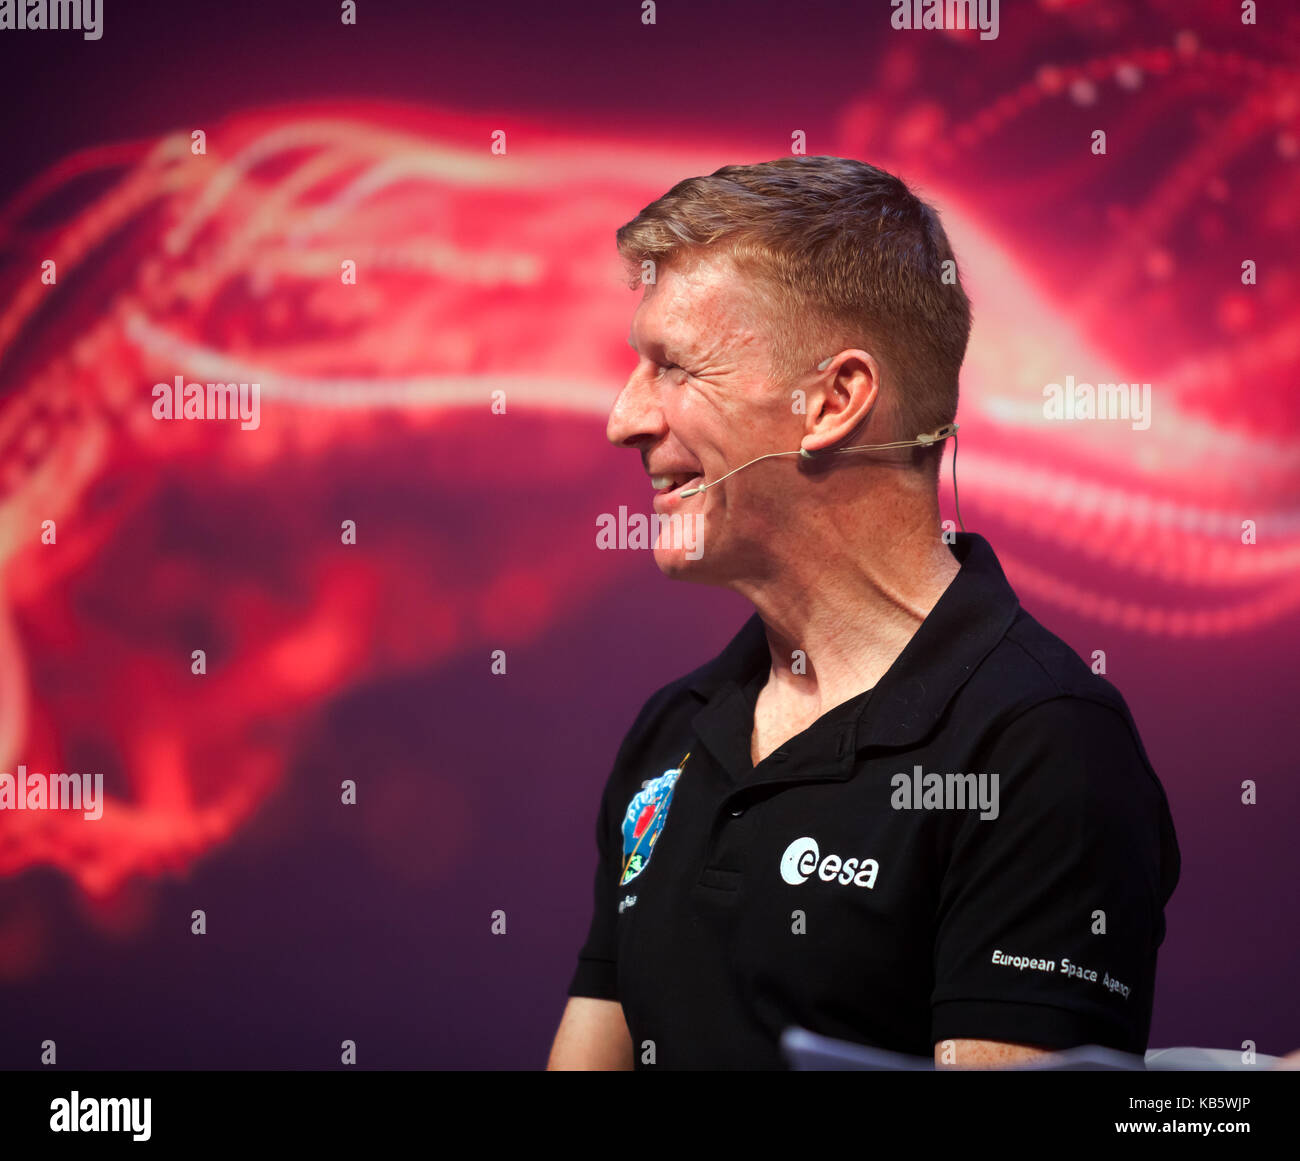 London, UK. 28th Sep, 2017. Tiim Peake,  European Space Agency astronaut. discussing his experiences on the ISS - Stock Image